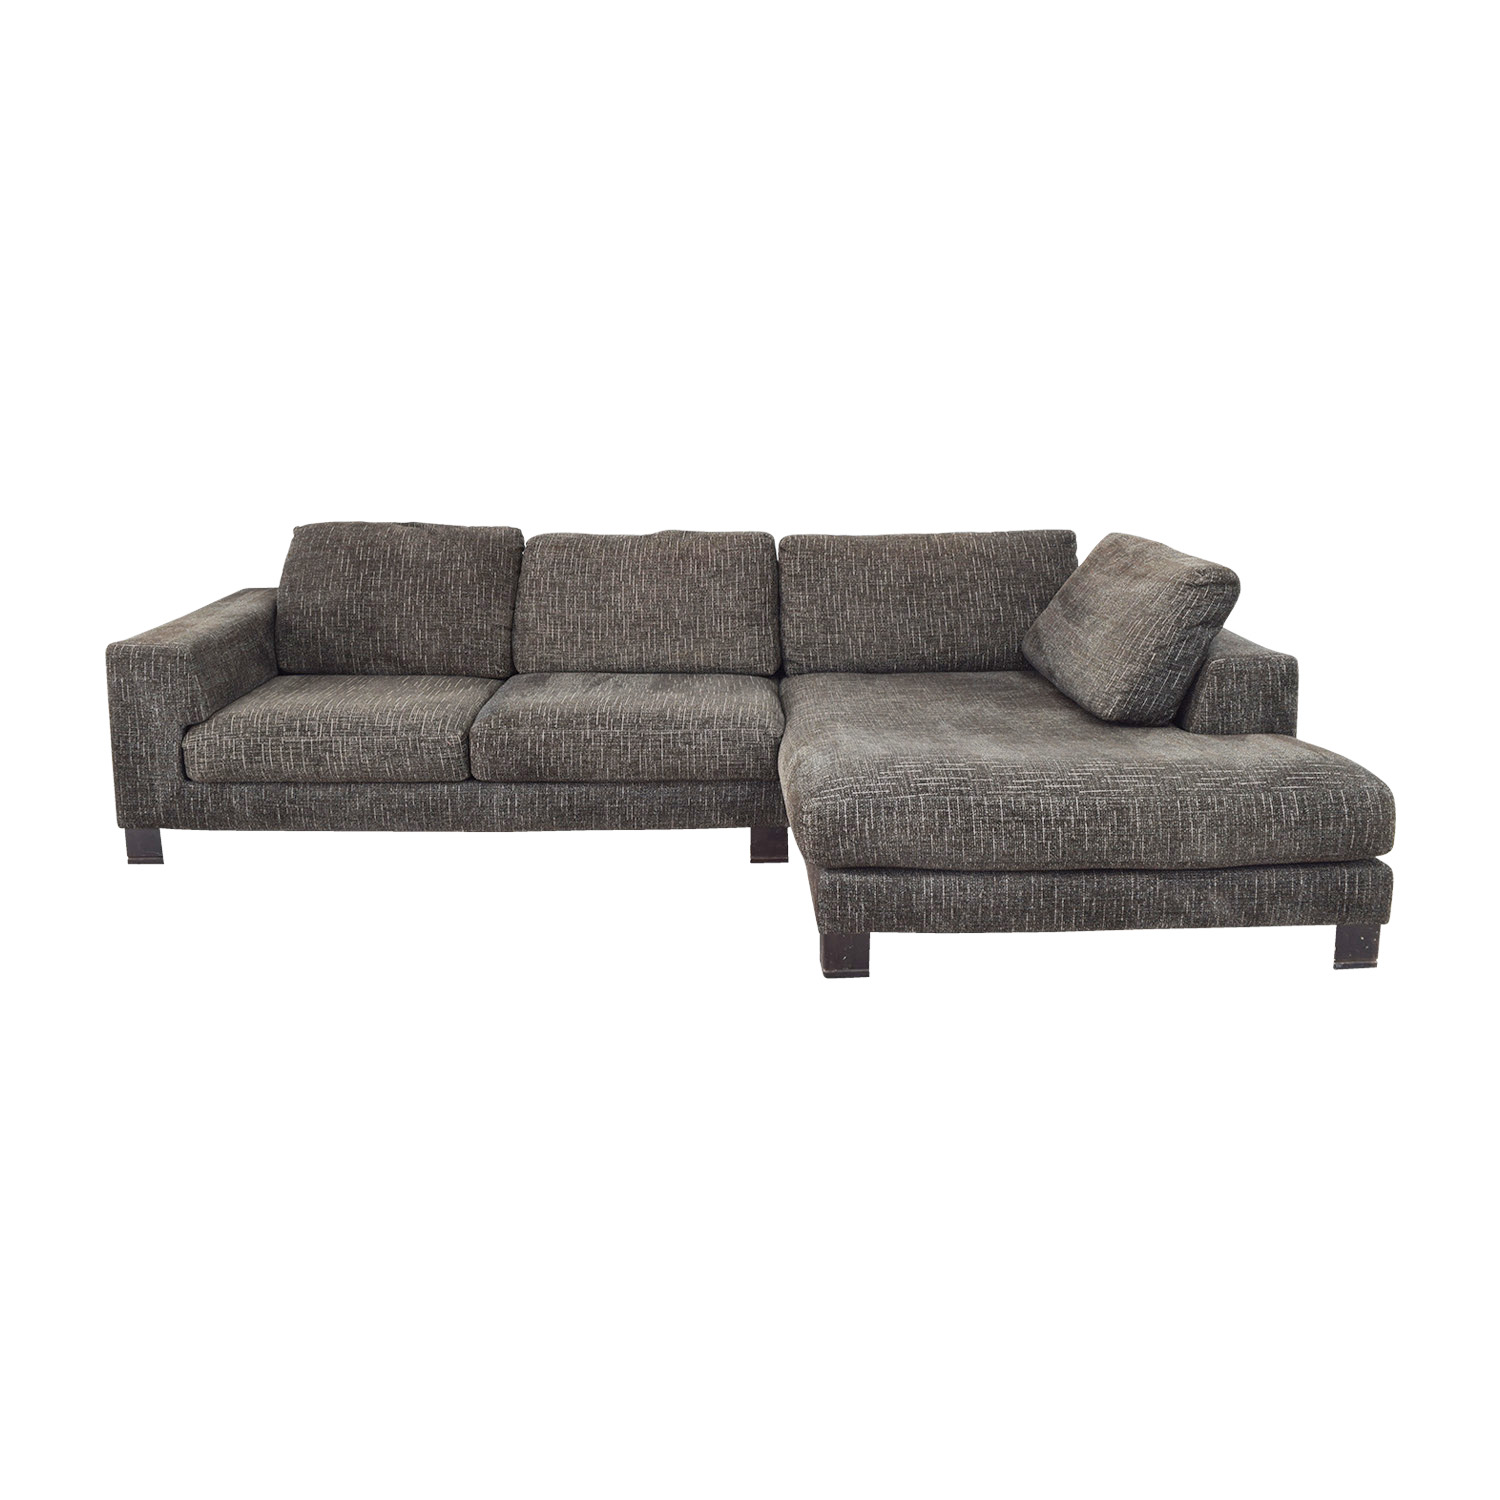 grey tweed sectional sofa sleeper couch cape town don t miss this december deal le